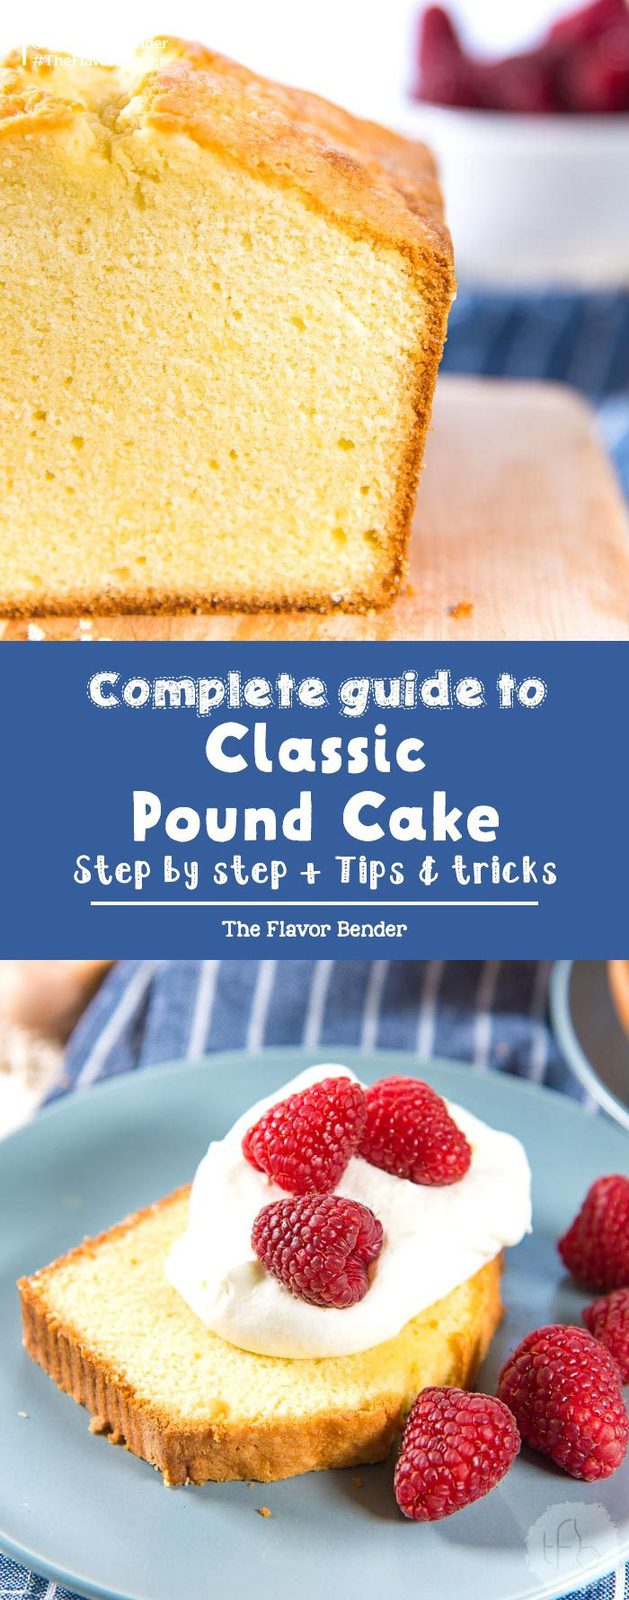 Classic Pound Cake - A complete guide on how to make perfect, delicious and moist Pound Cake even if you're a baking novice! Tips + Tricks and Troubleshooting guide.